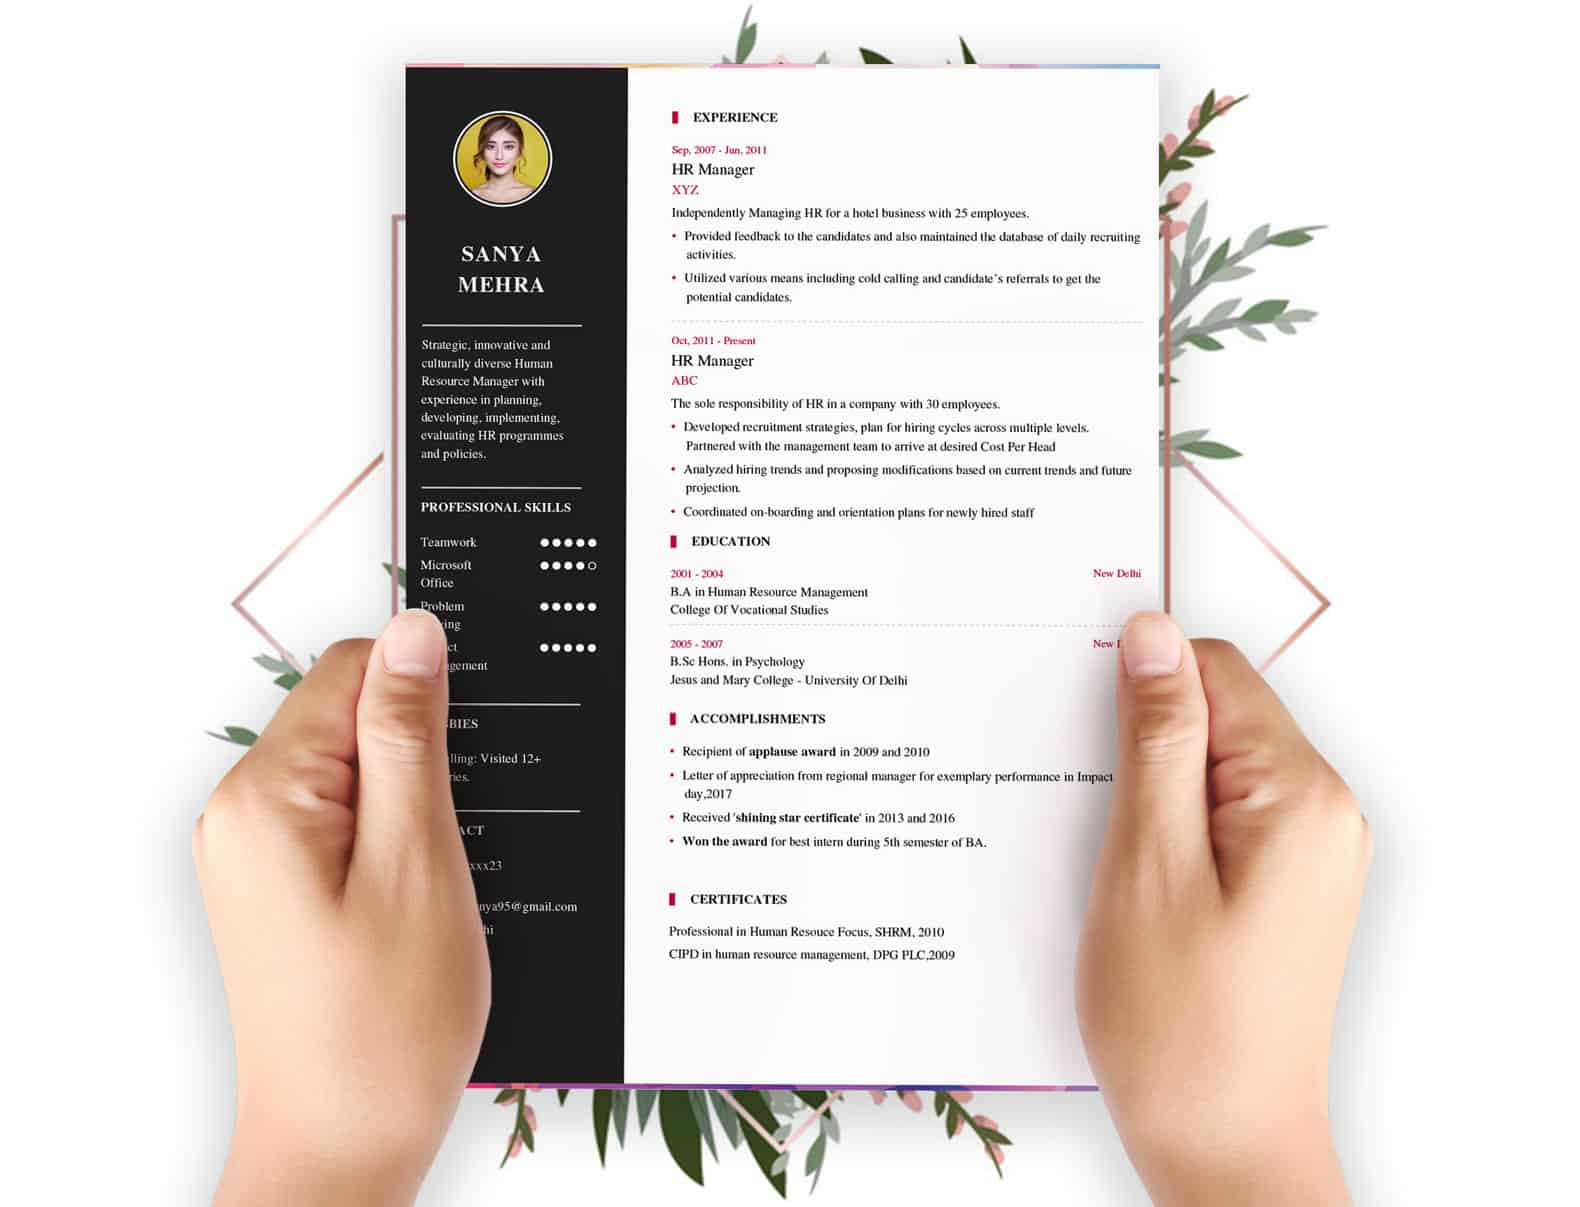 resume builder free latest format login template powerpoint layout tips does now cost Resume Free Resume Builder Login